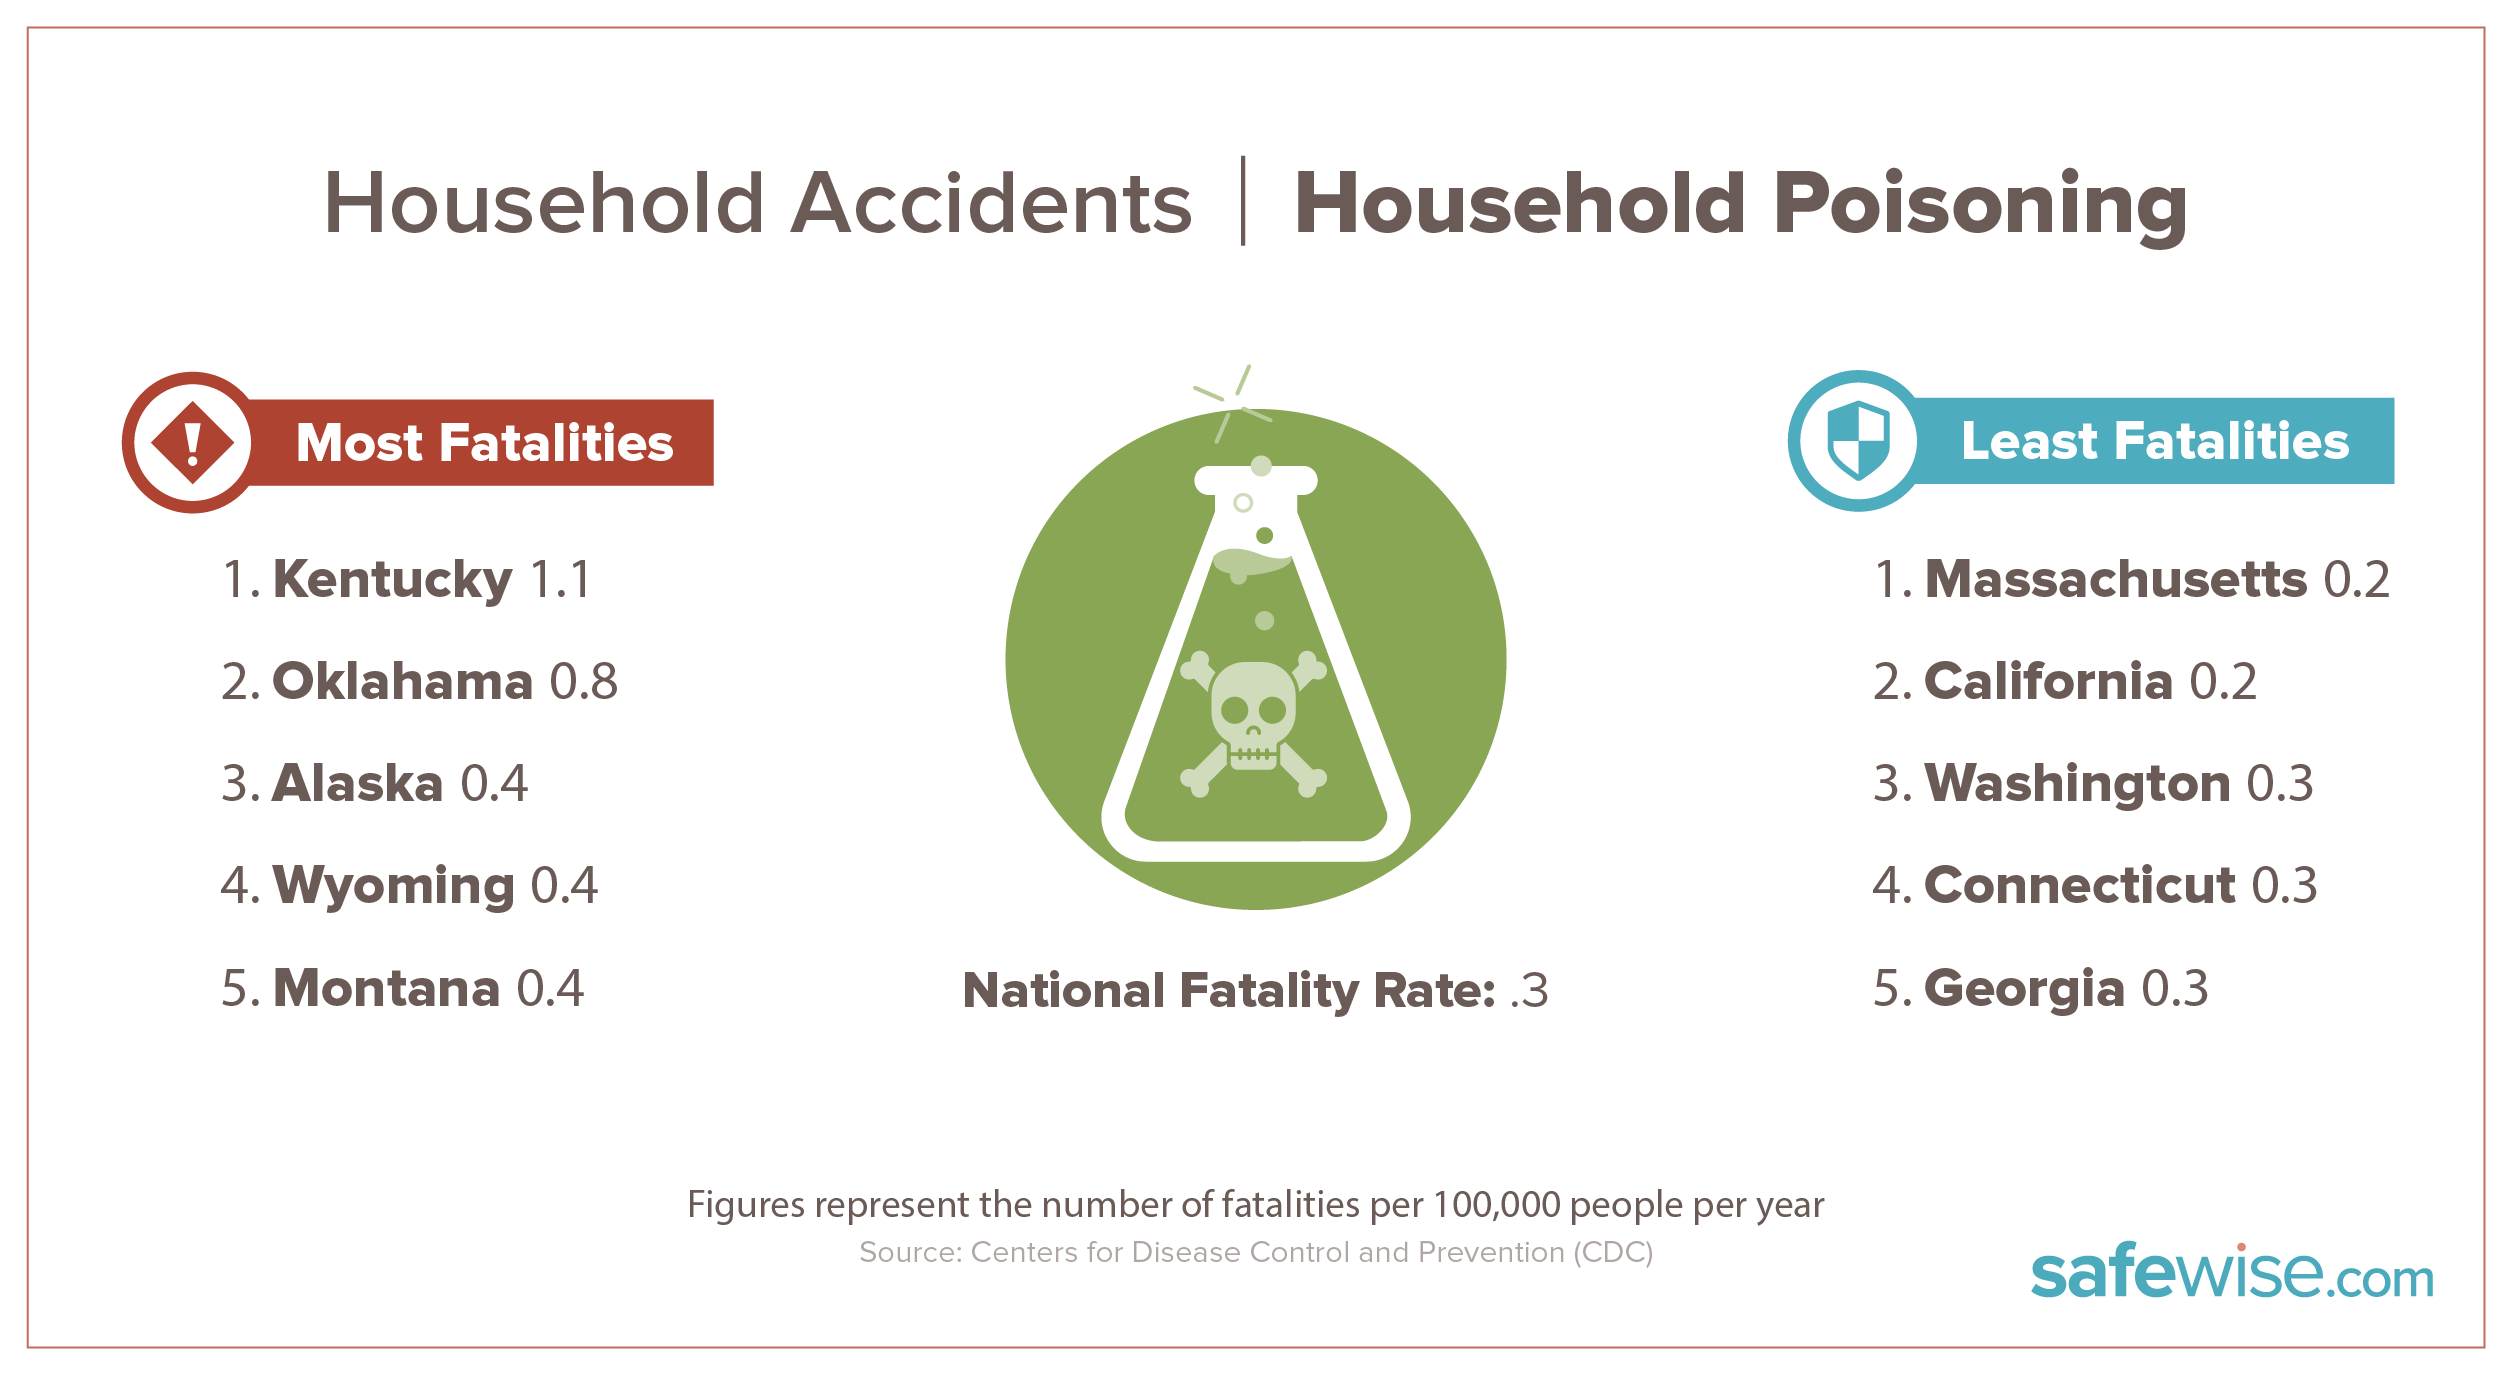 states with most household poisoning fatalities